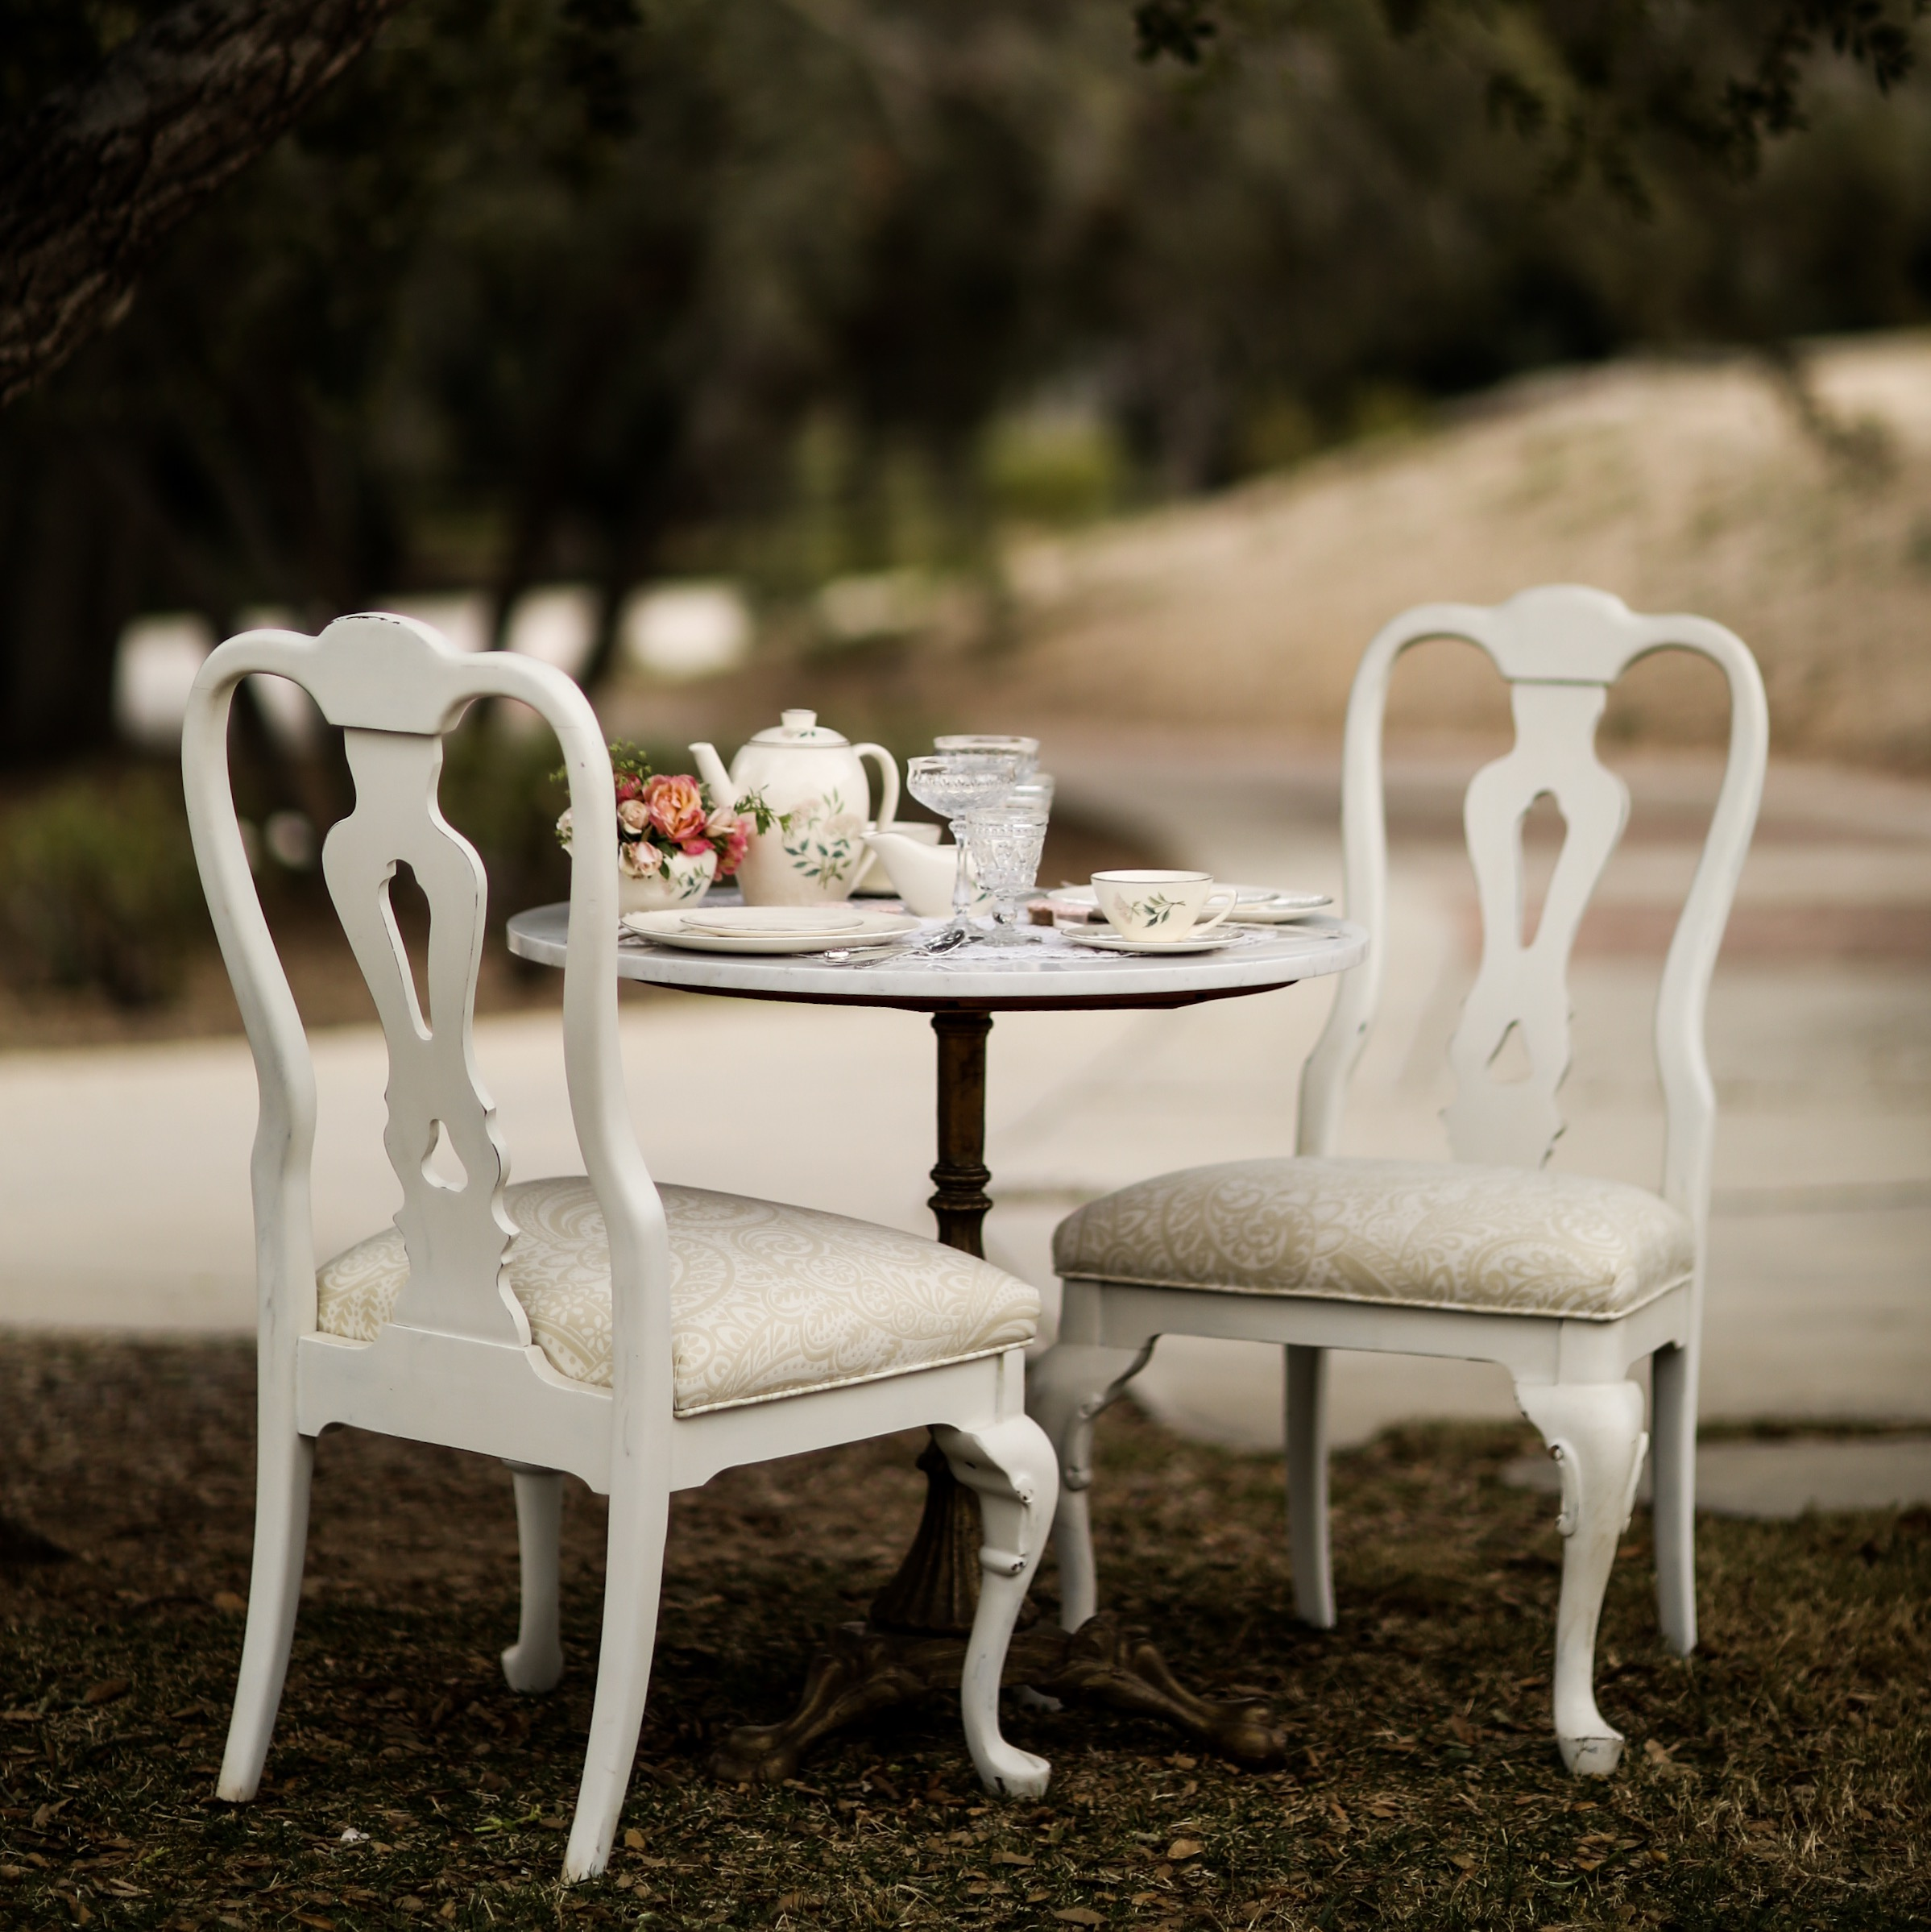 Vintage china and furniture rental for weddings, events, and parties. Wedding rentals in the Temecula Valley.